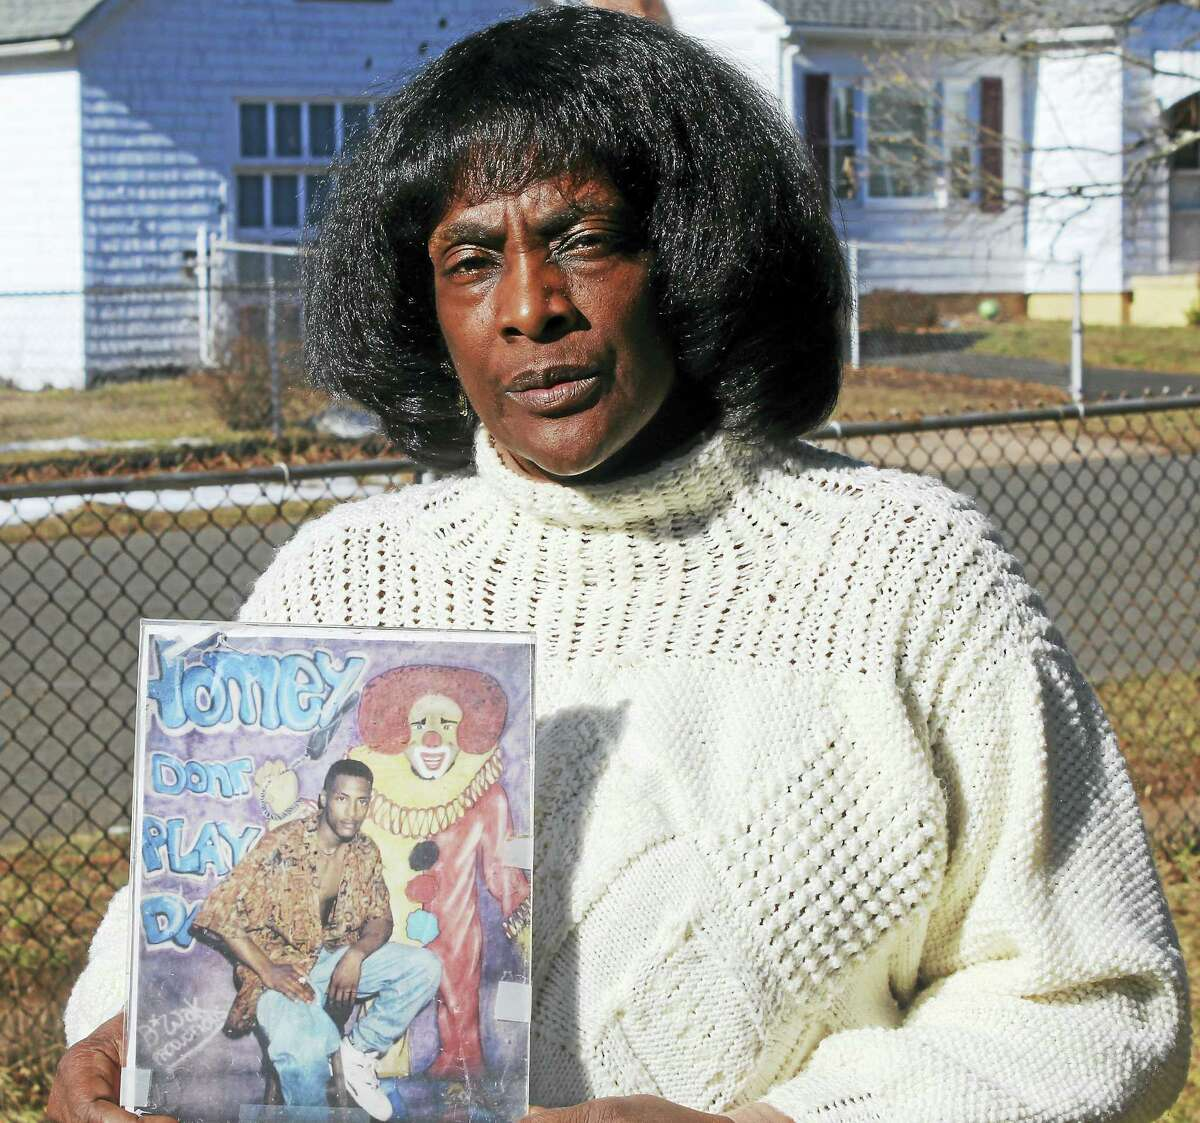 Robin Smith holds a picture of her son, Jason, who was killed in a 1996 shooting in New Haven.